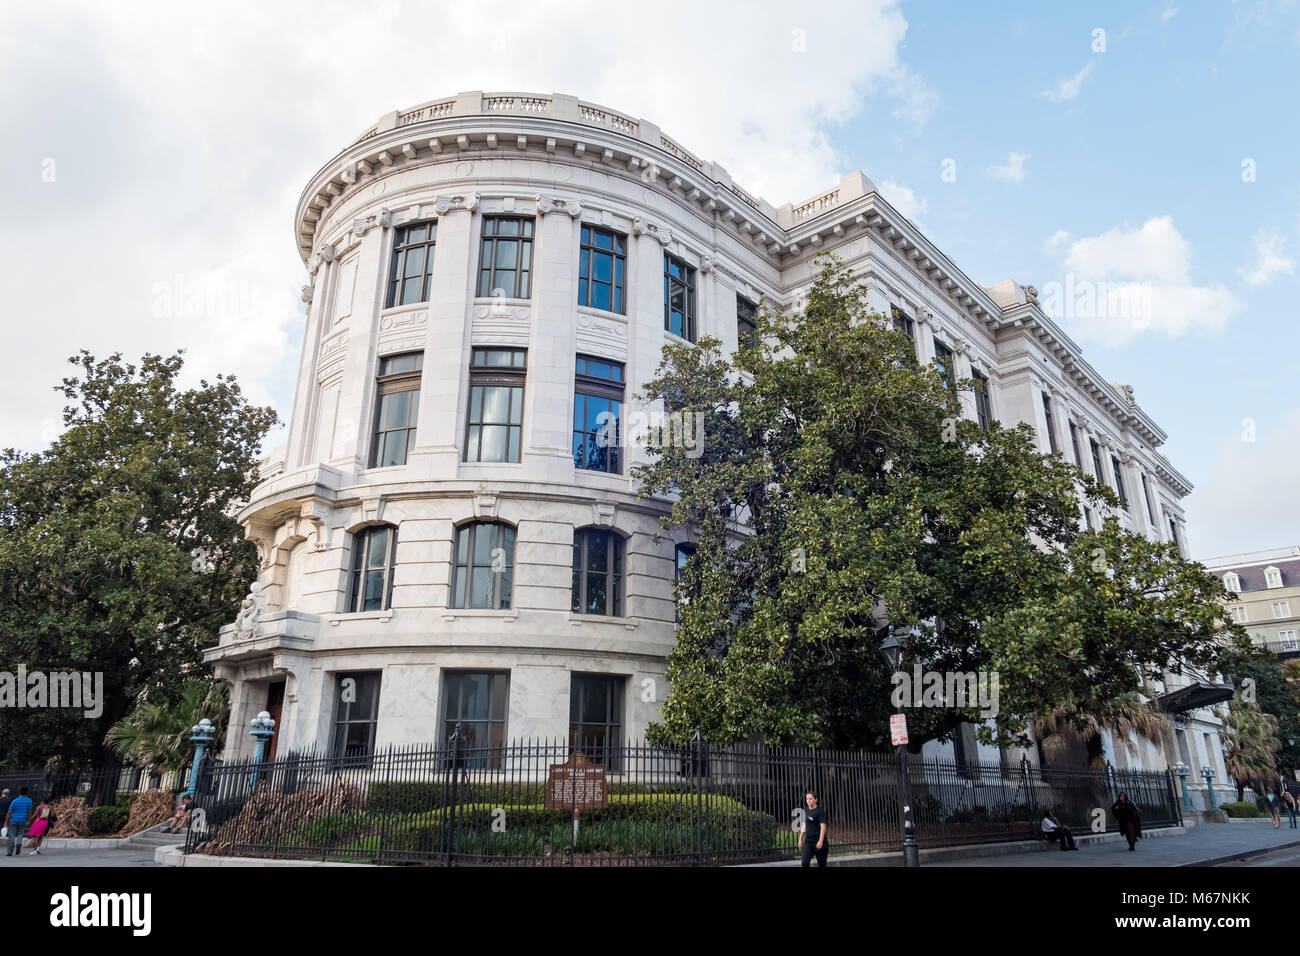 New Orleans, FEB 21: Exterior view of the beautiful and historical Louisiana Supreme Court Clerk on FEB 21,2018 - Stock Image